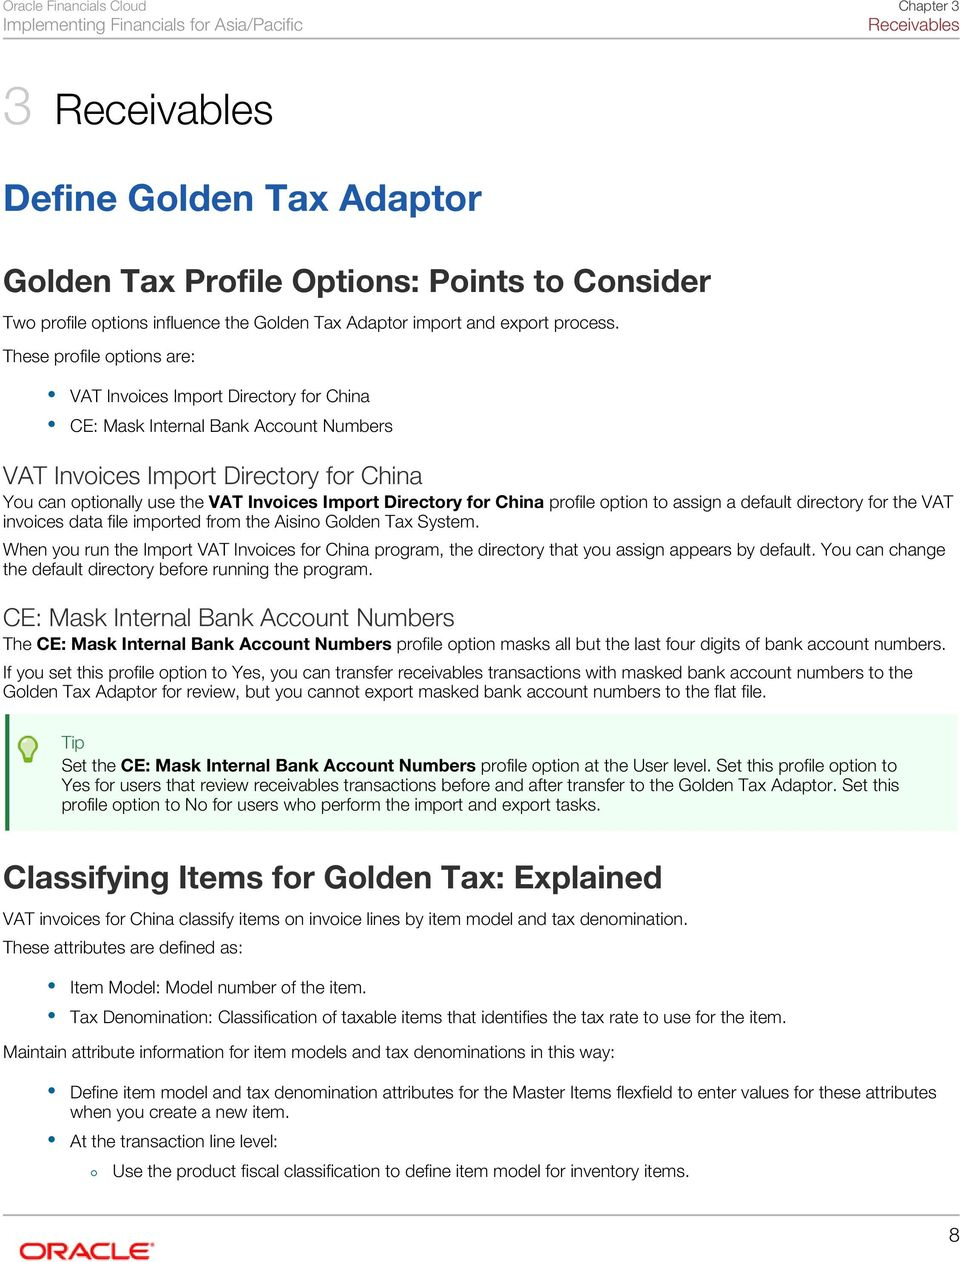 Directory for China profile option to assign a default directory for the VAT invoices data file imported from the Aisino Golden Tax System.